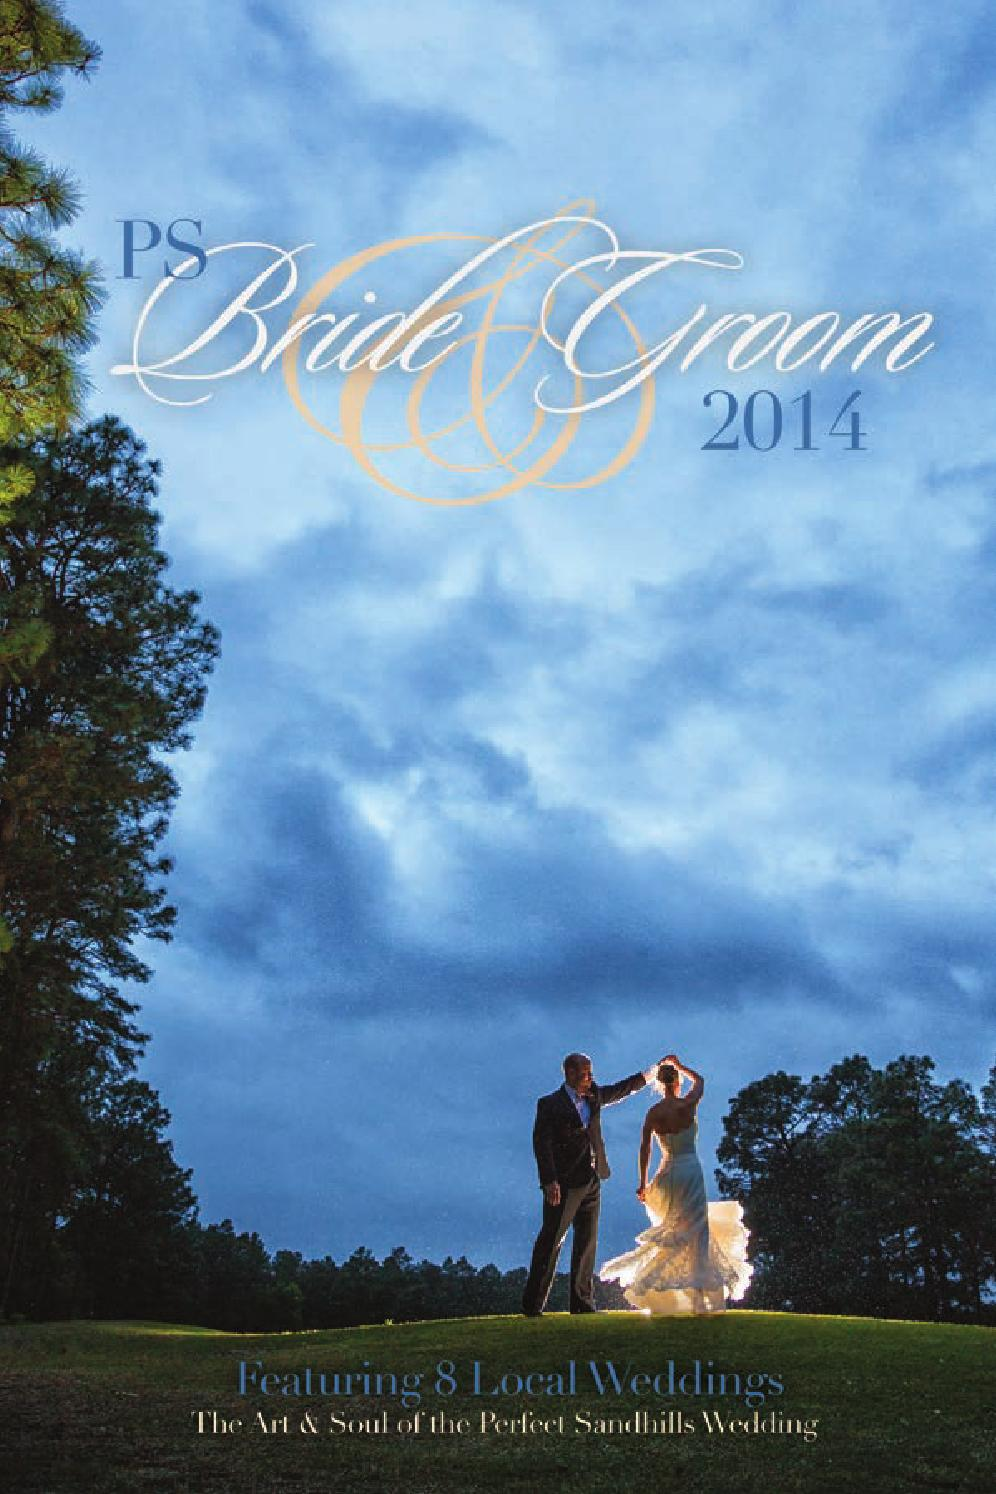 PineStraw Bride & Groom 2014 by PineStraw Magazine - issuu